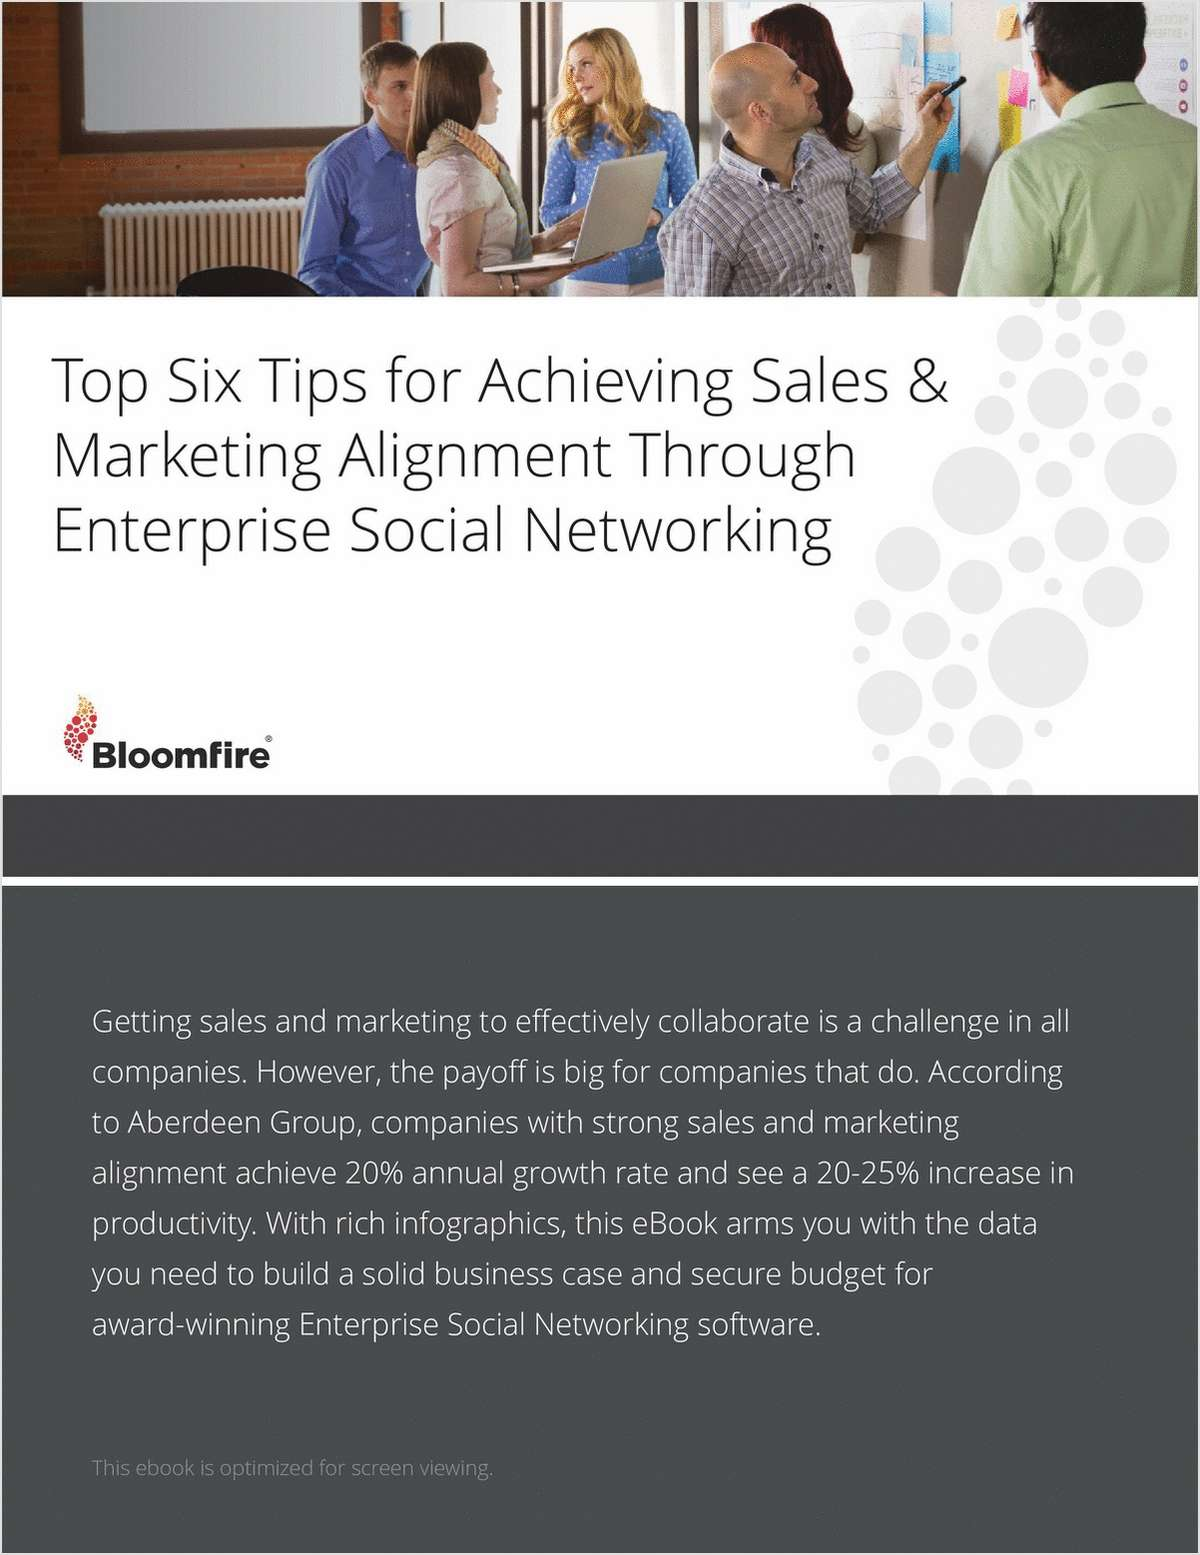 Top Six Tips for Achieving Sales & Marketing Alignment through Enterprise Social Networking